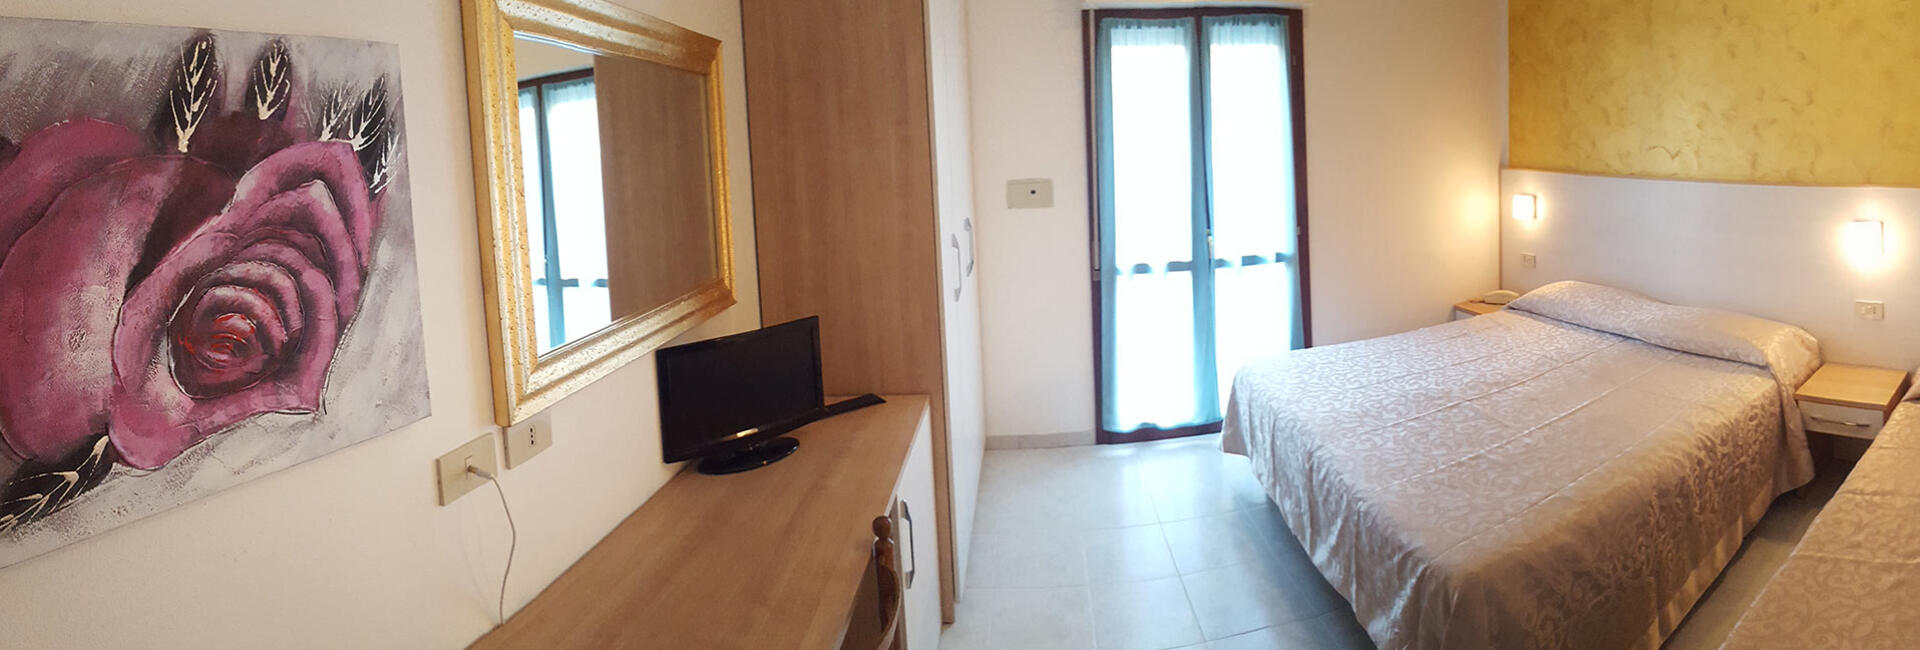 laurahotel it camere 001